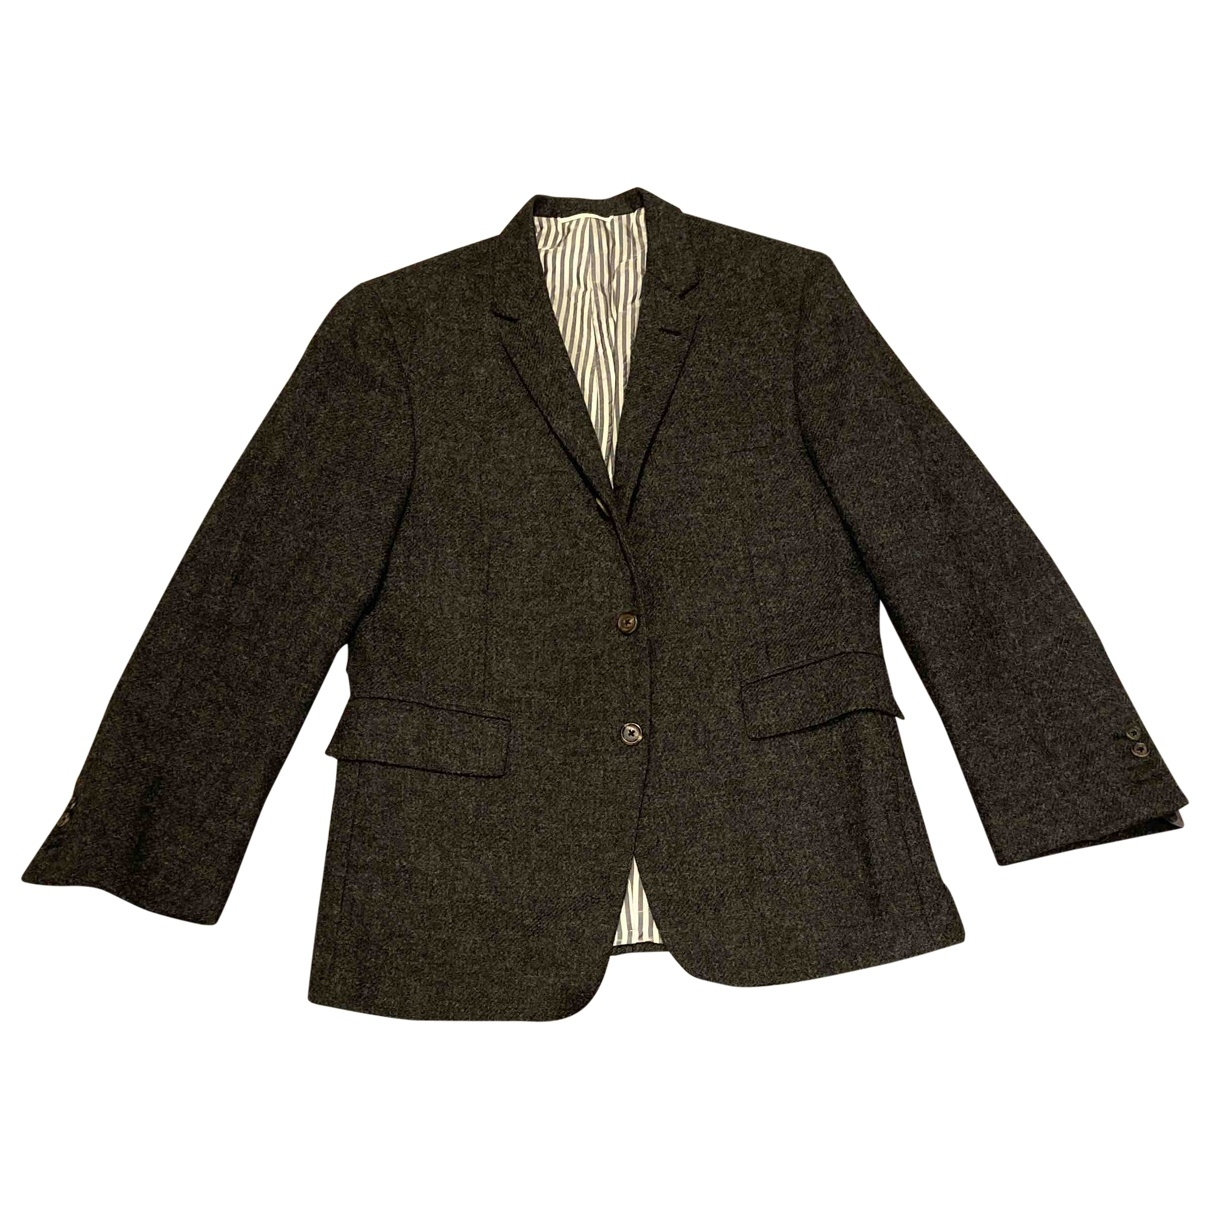 Thom Browne \N Anthracite Wool jacket  for Men M International